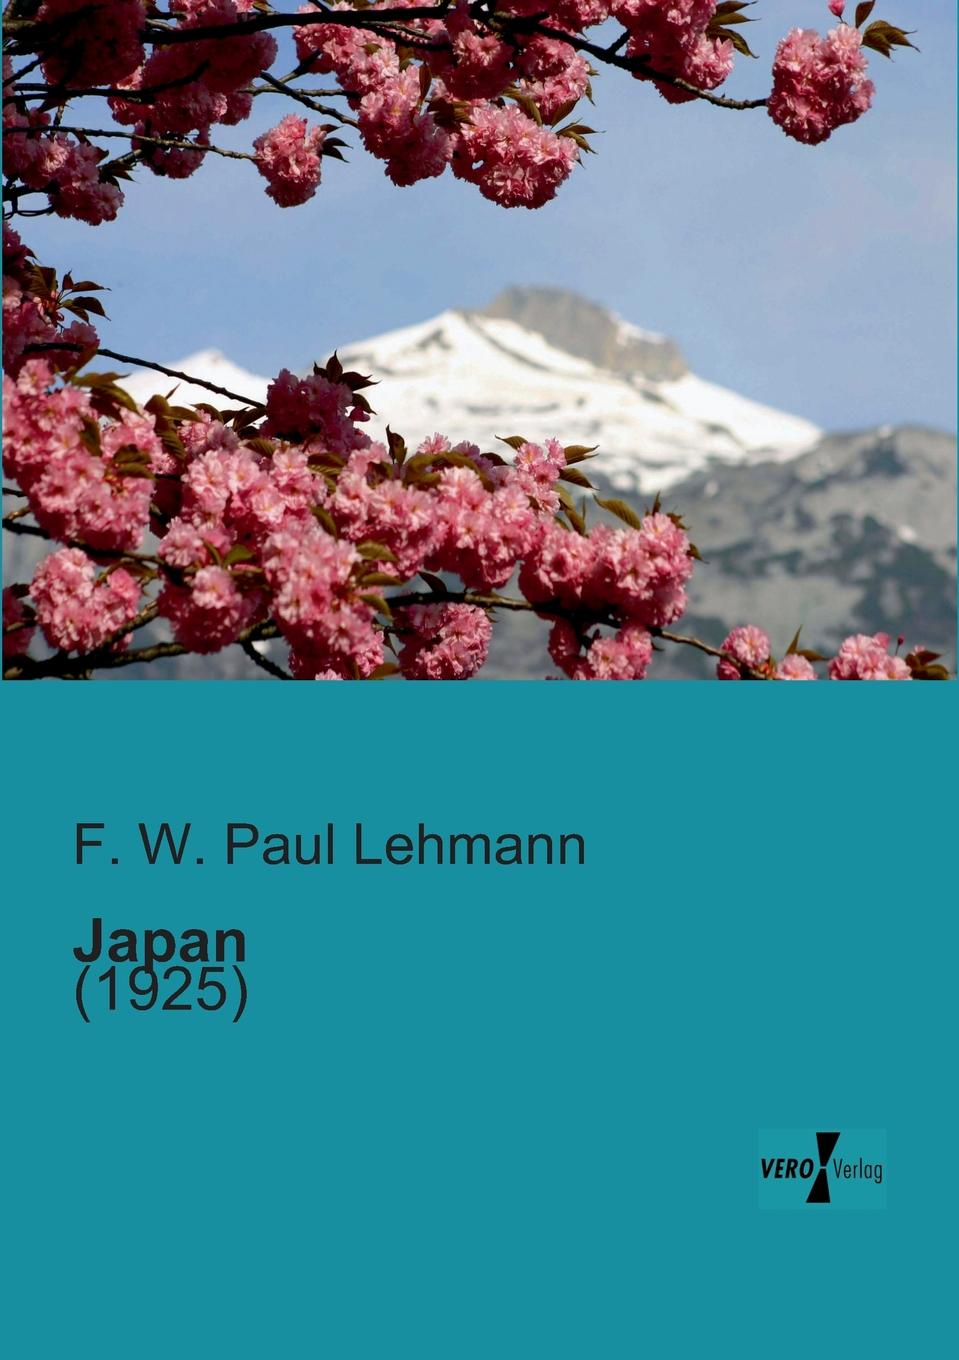 F. W. Paul Lehmann Japan